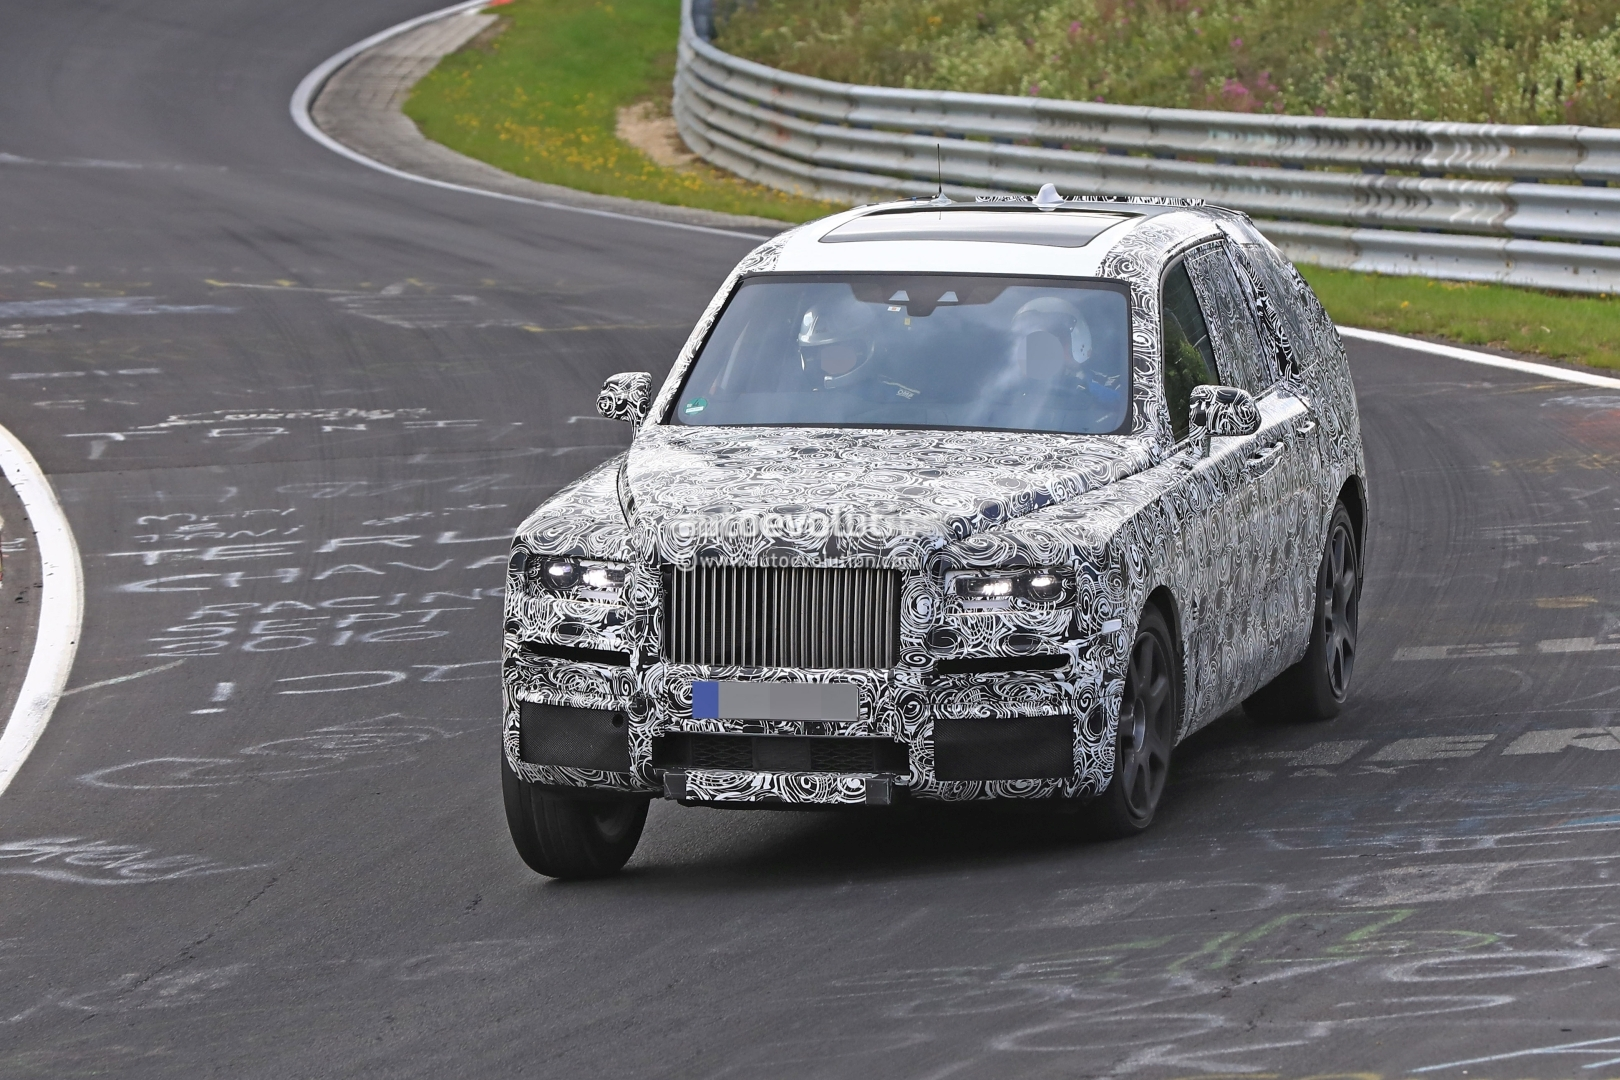 All-New Rolls-Royce Phantom unveiled